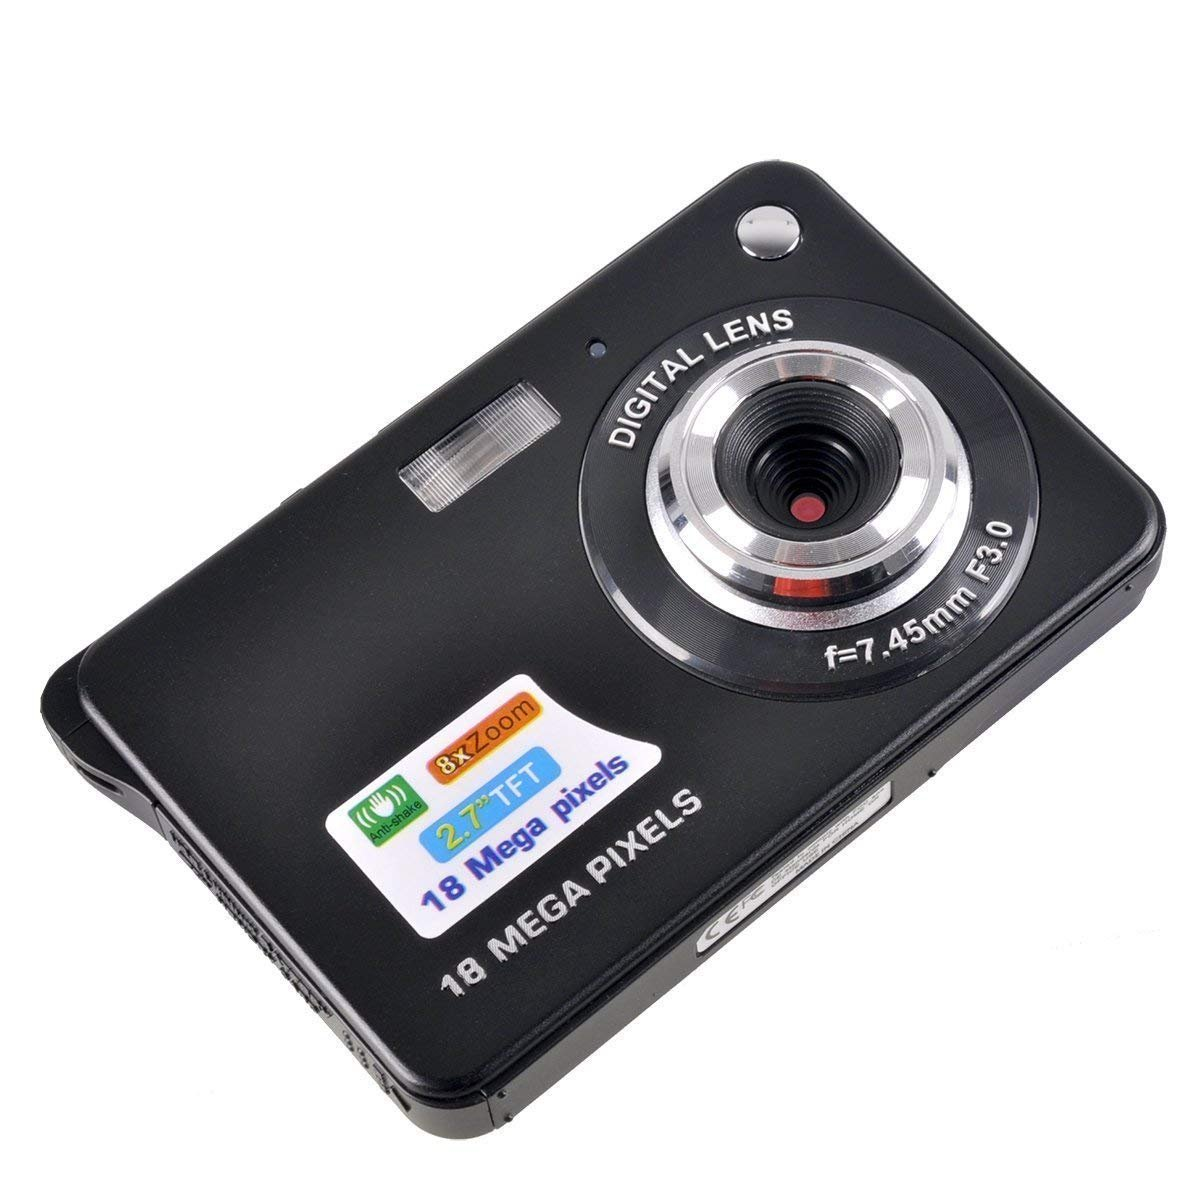 Stoga Black Mini Camera, 2.7 inch, built-in flash by STOGAV